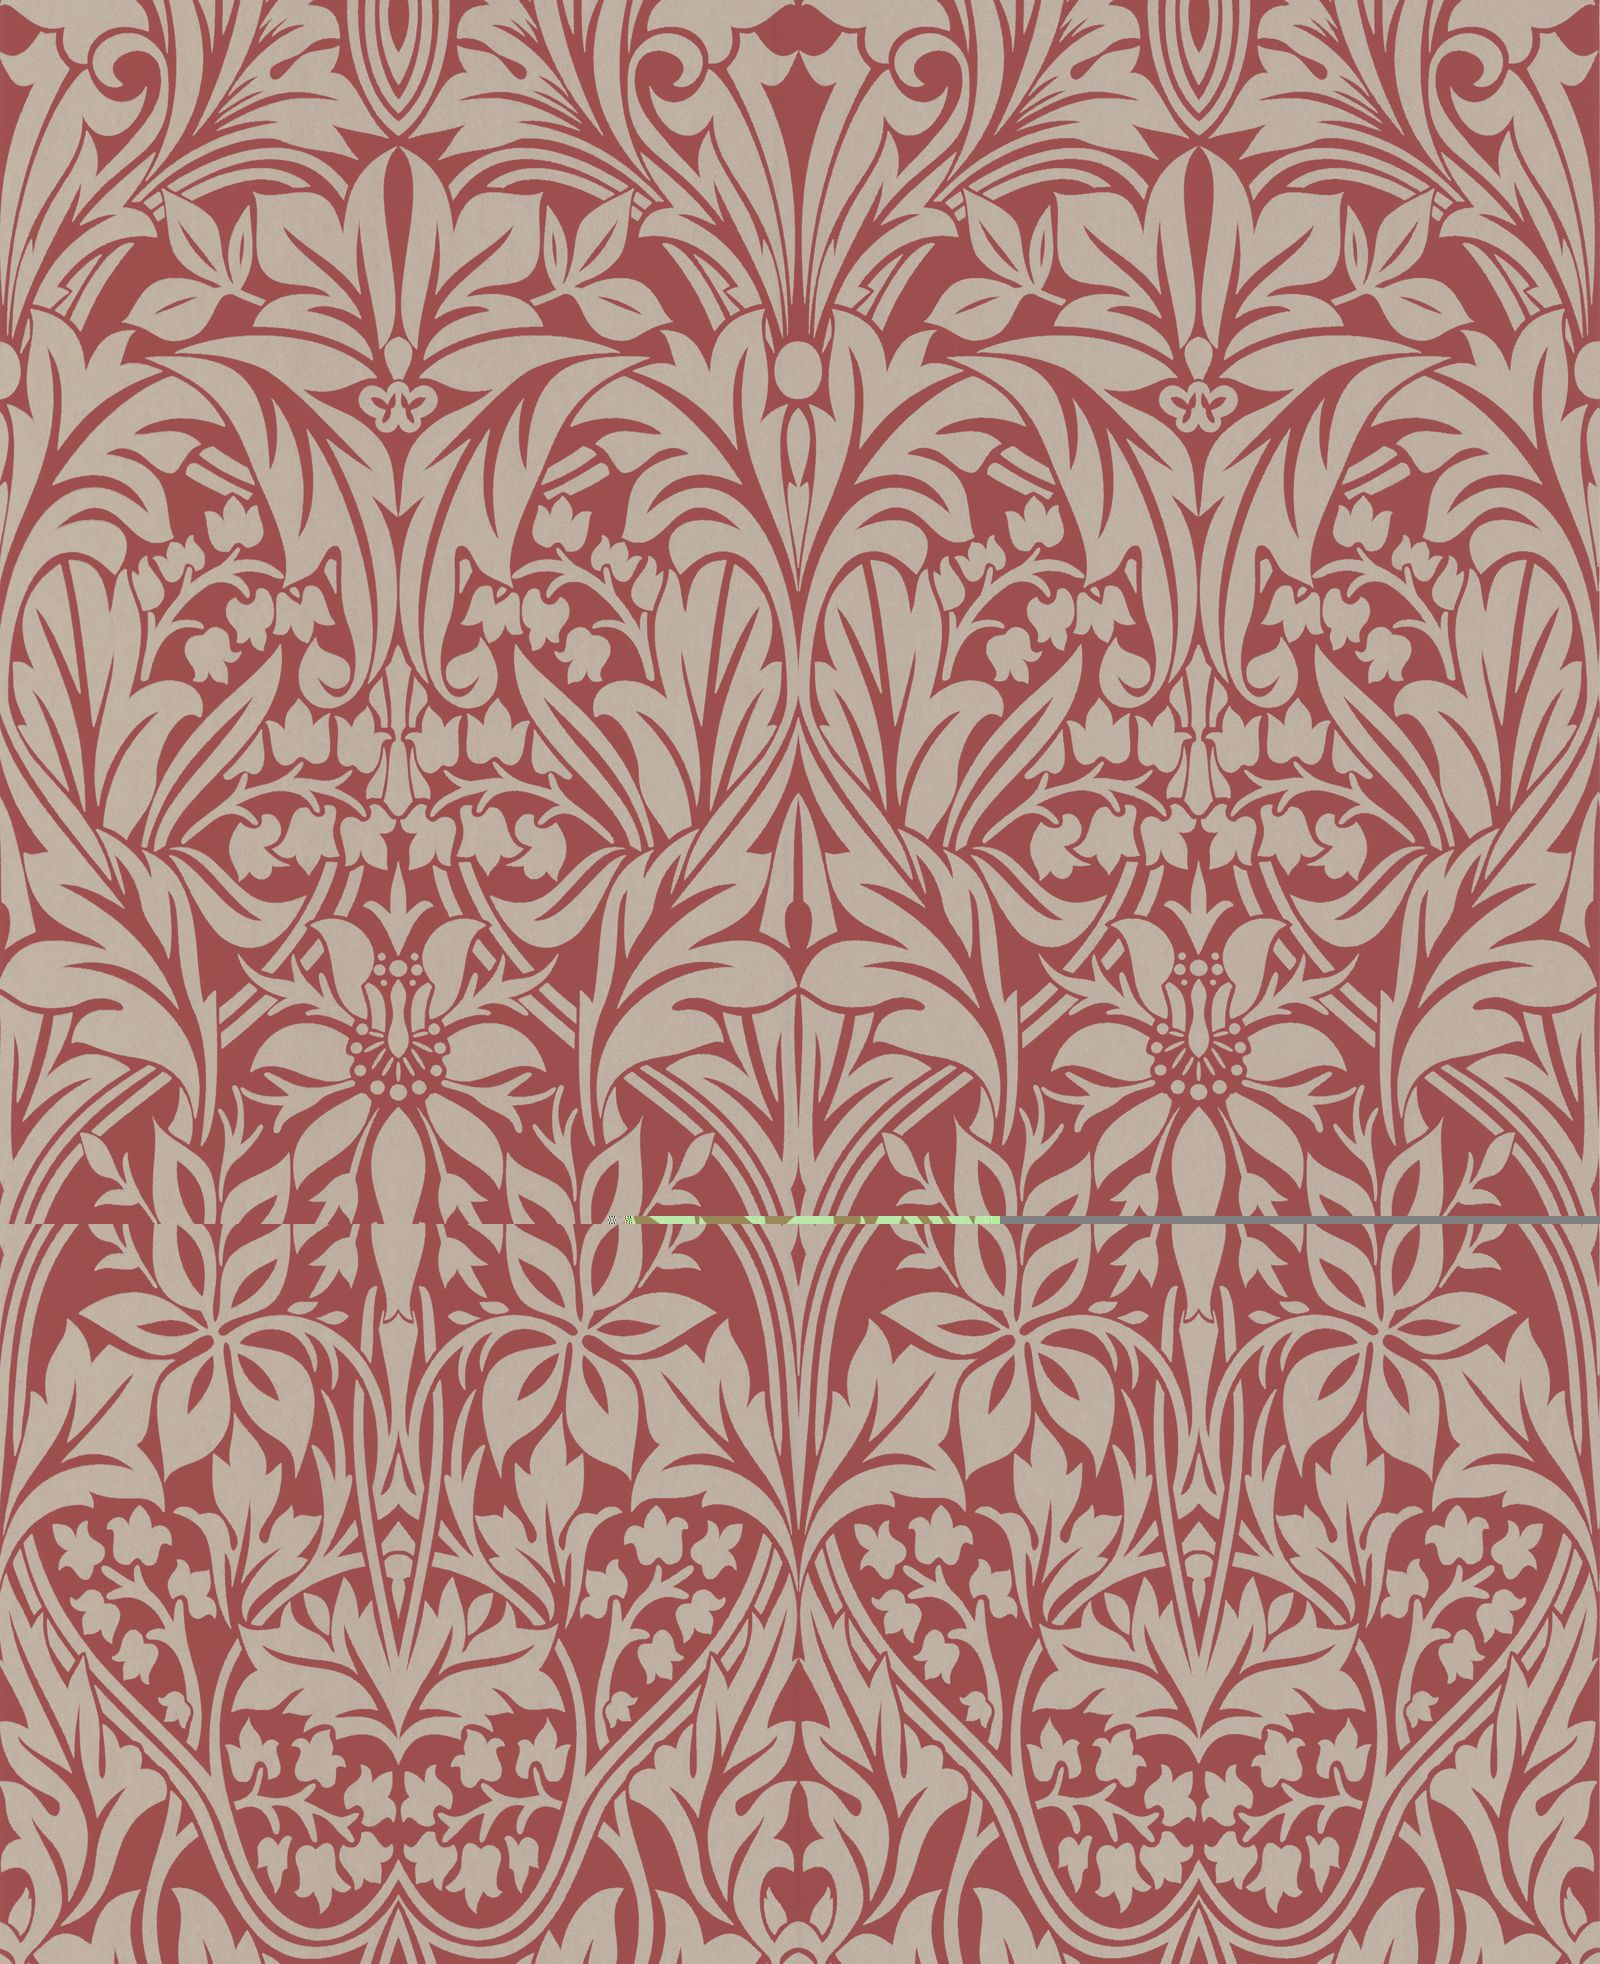 Manor House Red Gold Wallpaper Designer Wallcovering Home